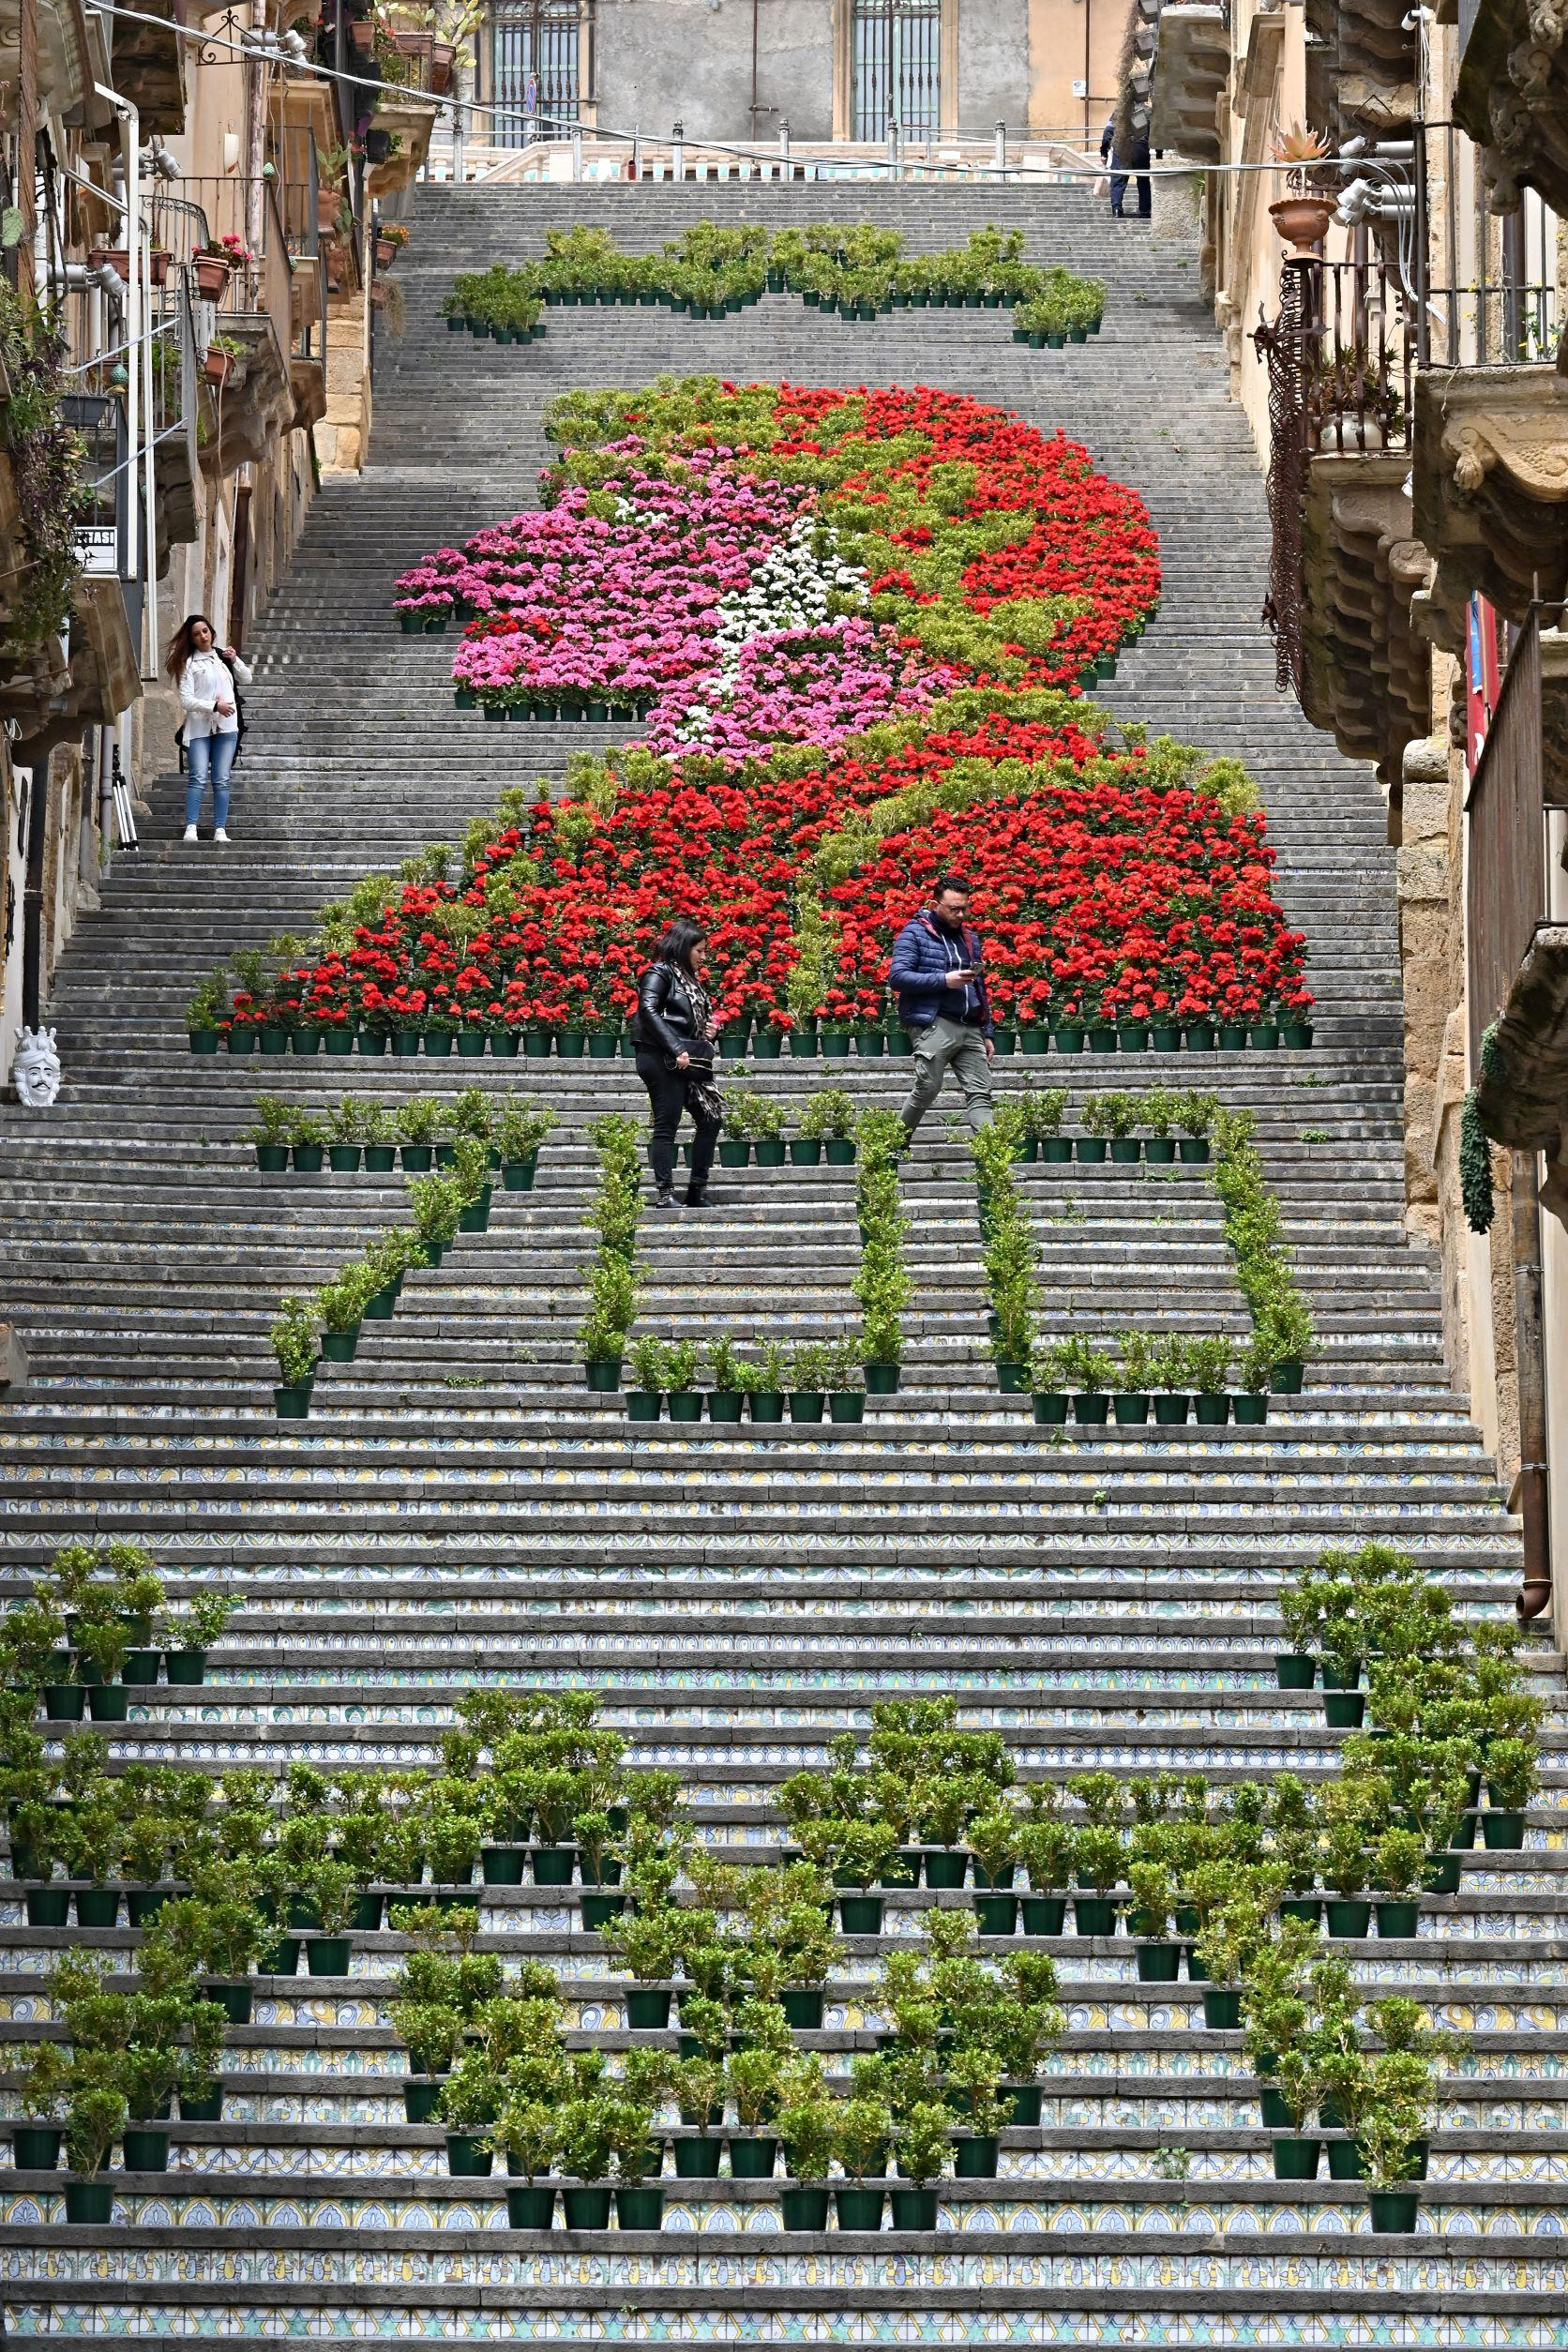 A view shows the Steps of Santa Maria del Monte with flowers marking the 700th anniversary of Italian poet Dante Alighieri, in Caltagirone, Sicily, on April 28, 2021. Photo: Andreas Solaro/AFP